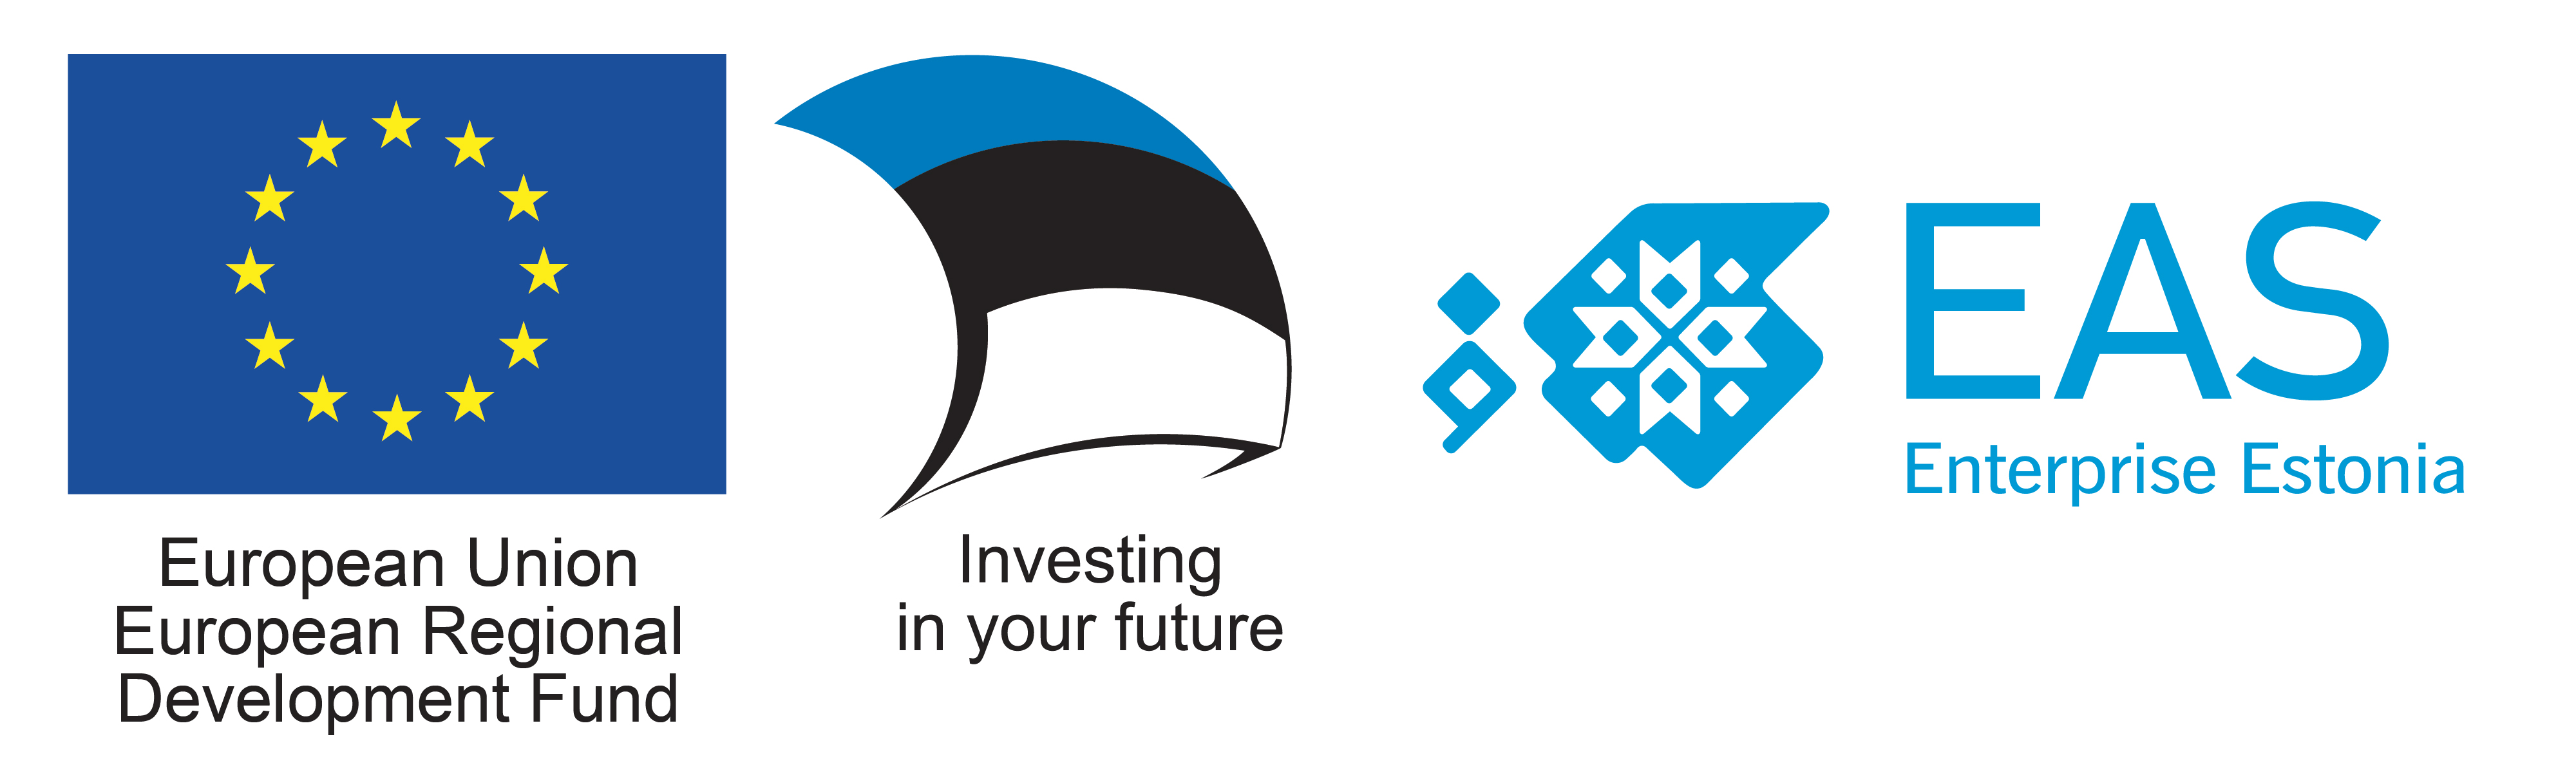 Logo Enterprise Estonia